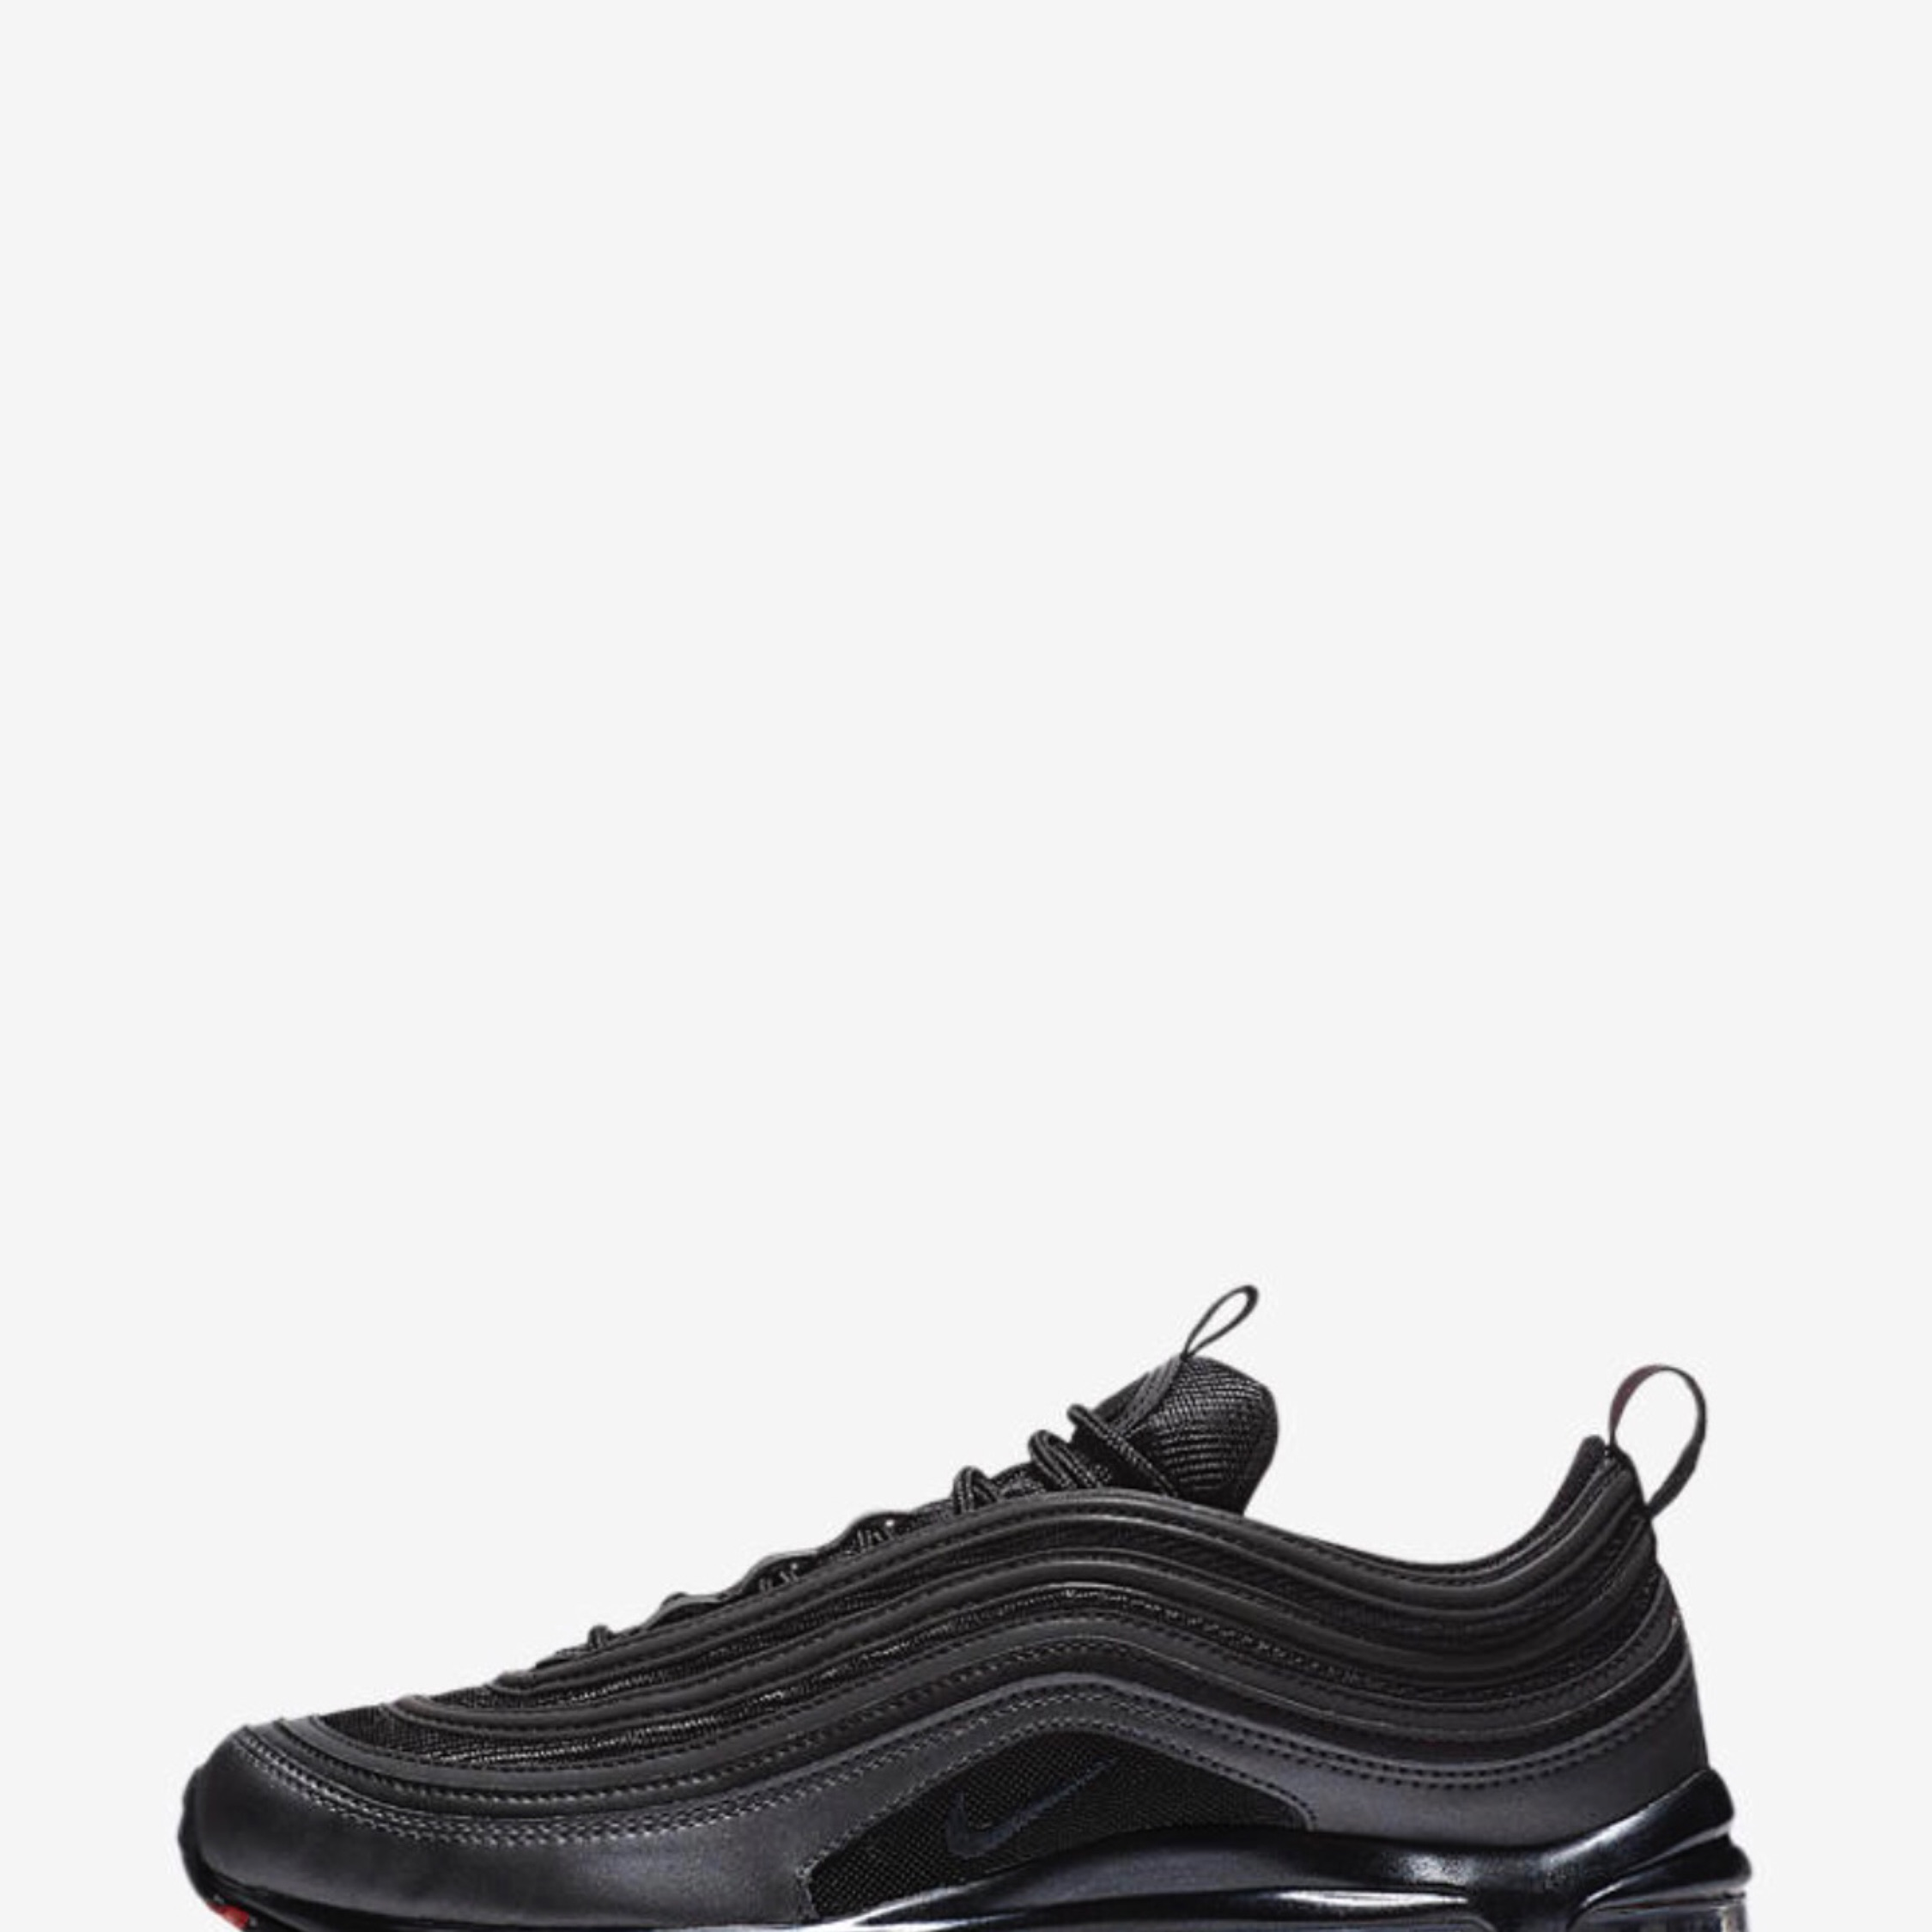 pretty nice 9e6d3 677d2 Nike Air Max 97 Eternal Future